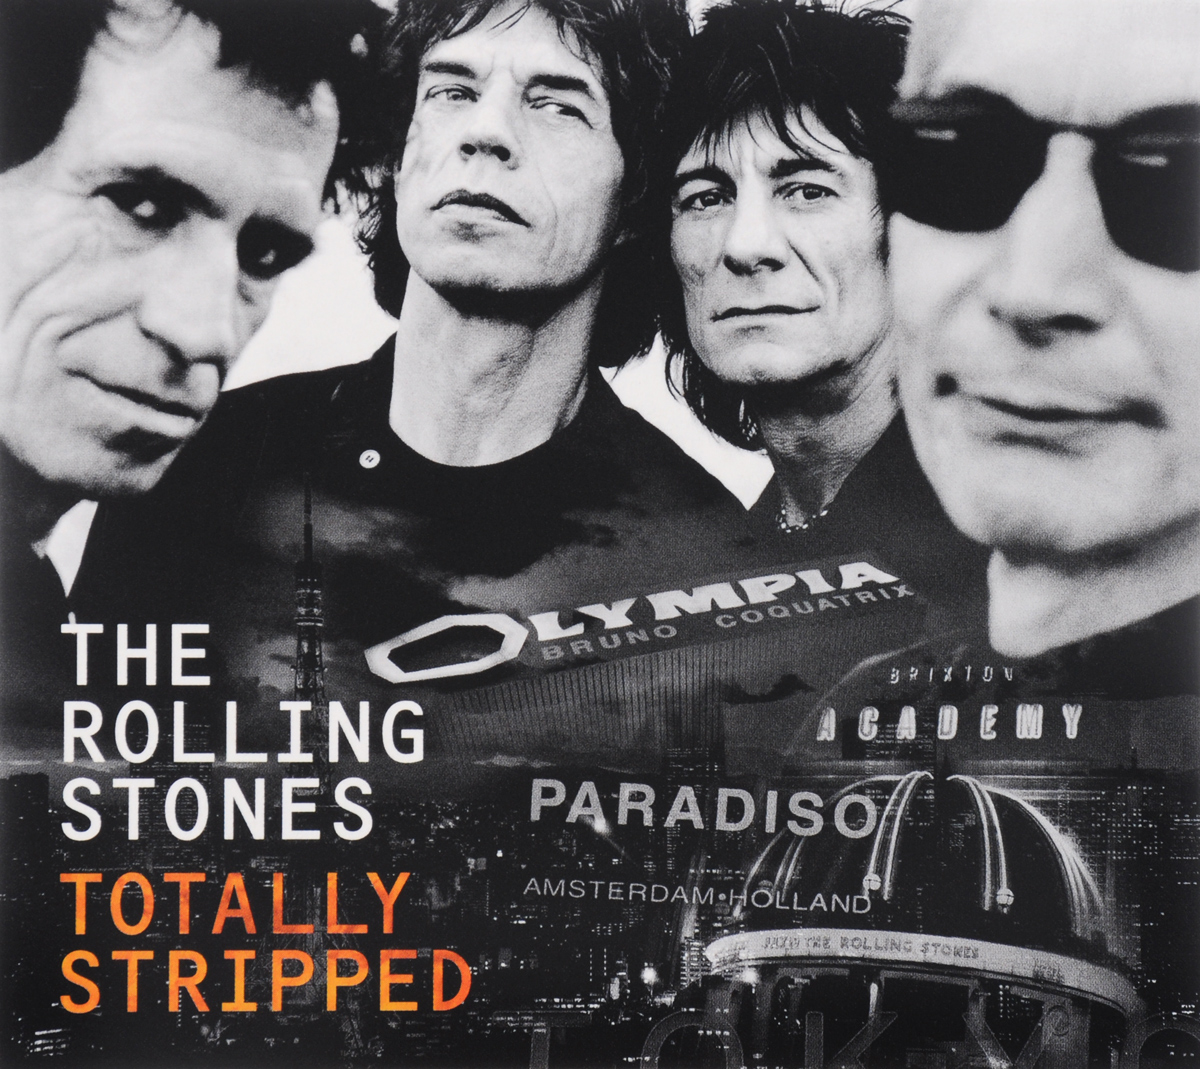 The Rolling Stones Rolling Stones. The Totally Stripped (CD + DVD) aspekte mittelstufe deutsch lehrbuch 3 dvd